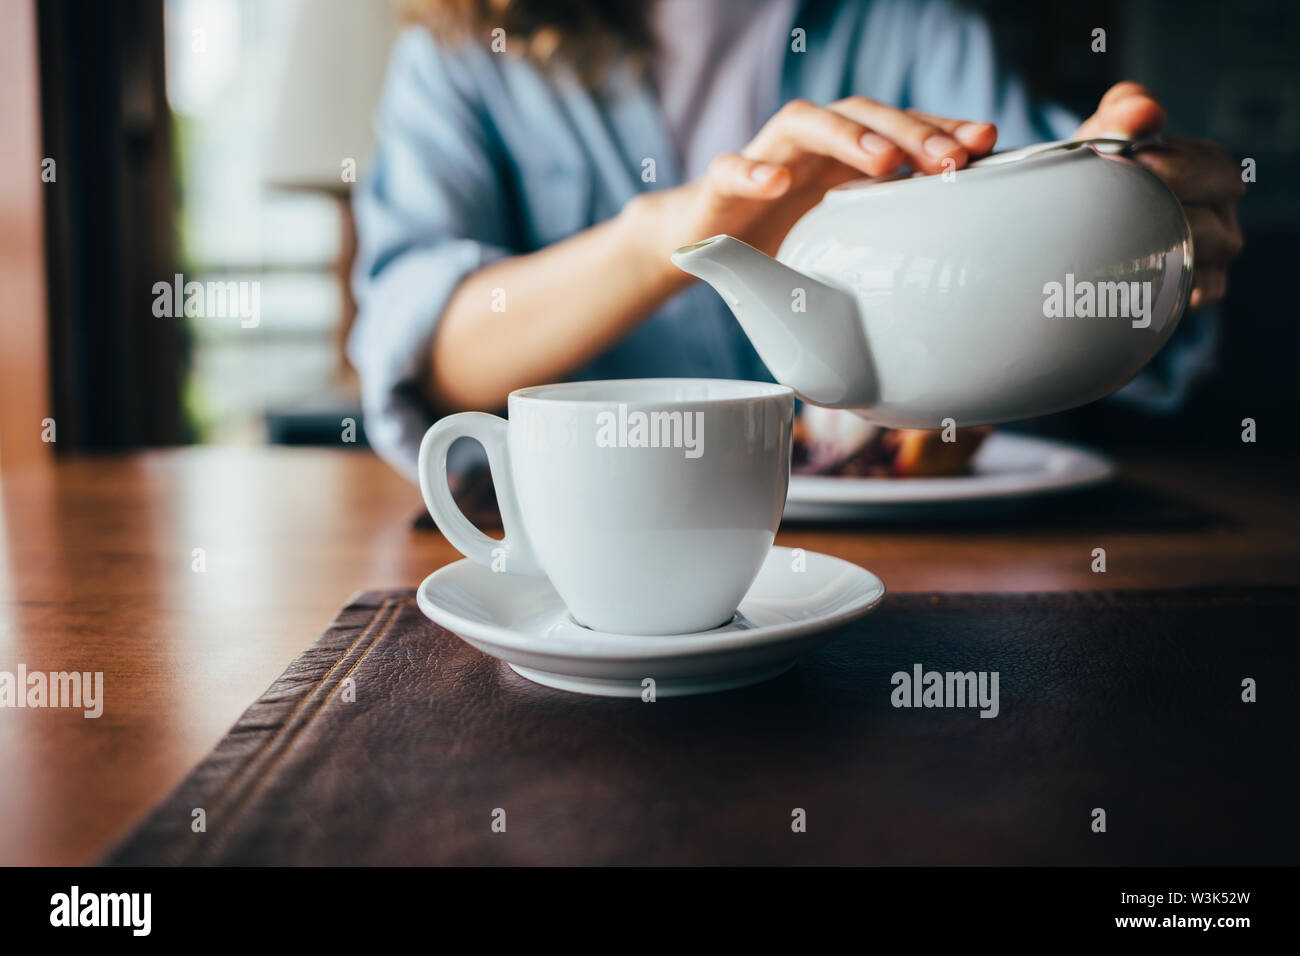 Young woman pouring tea from teapot into cup sitting at table in restaurant, close-up. Scene of daily life female's hands making warming drink. - Stock Image